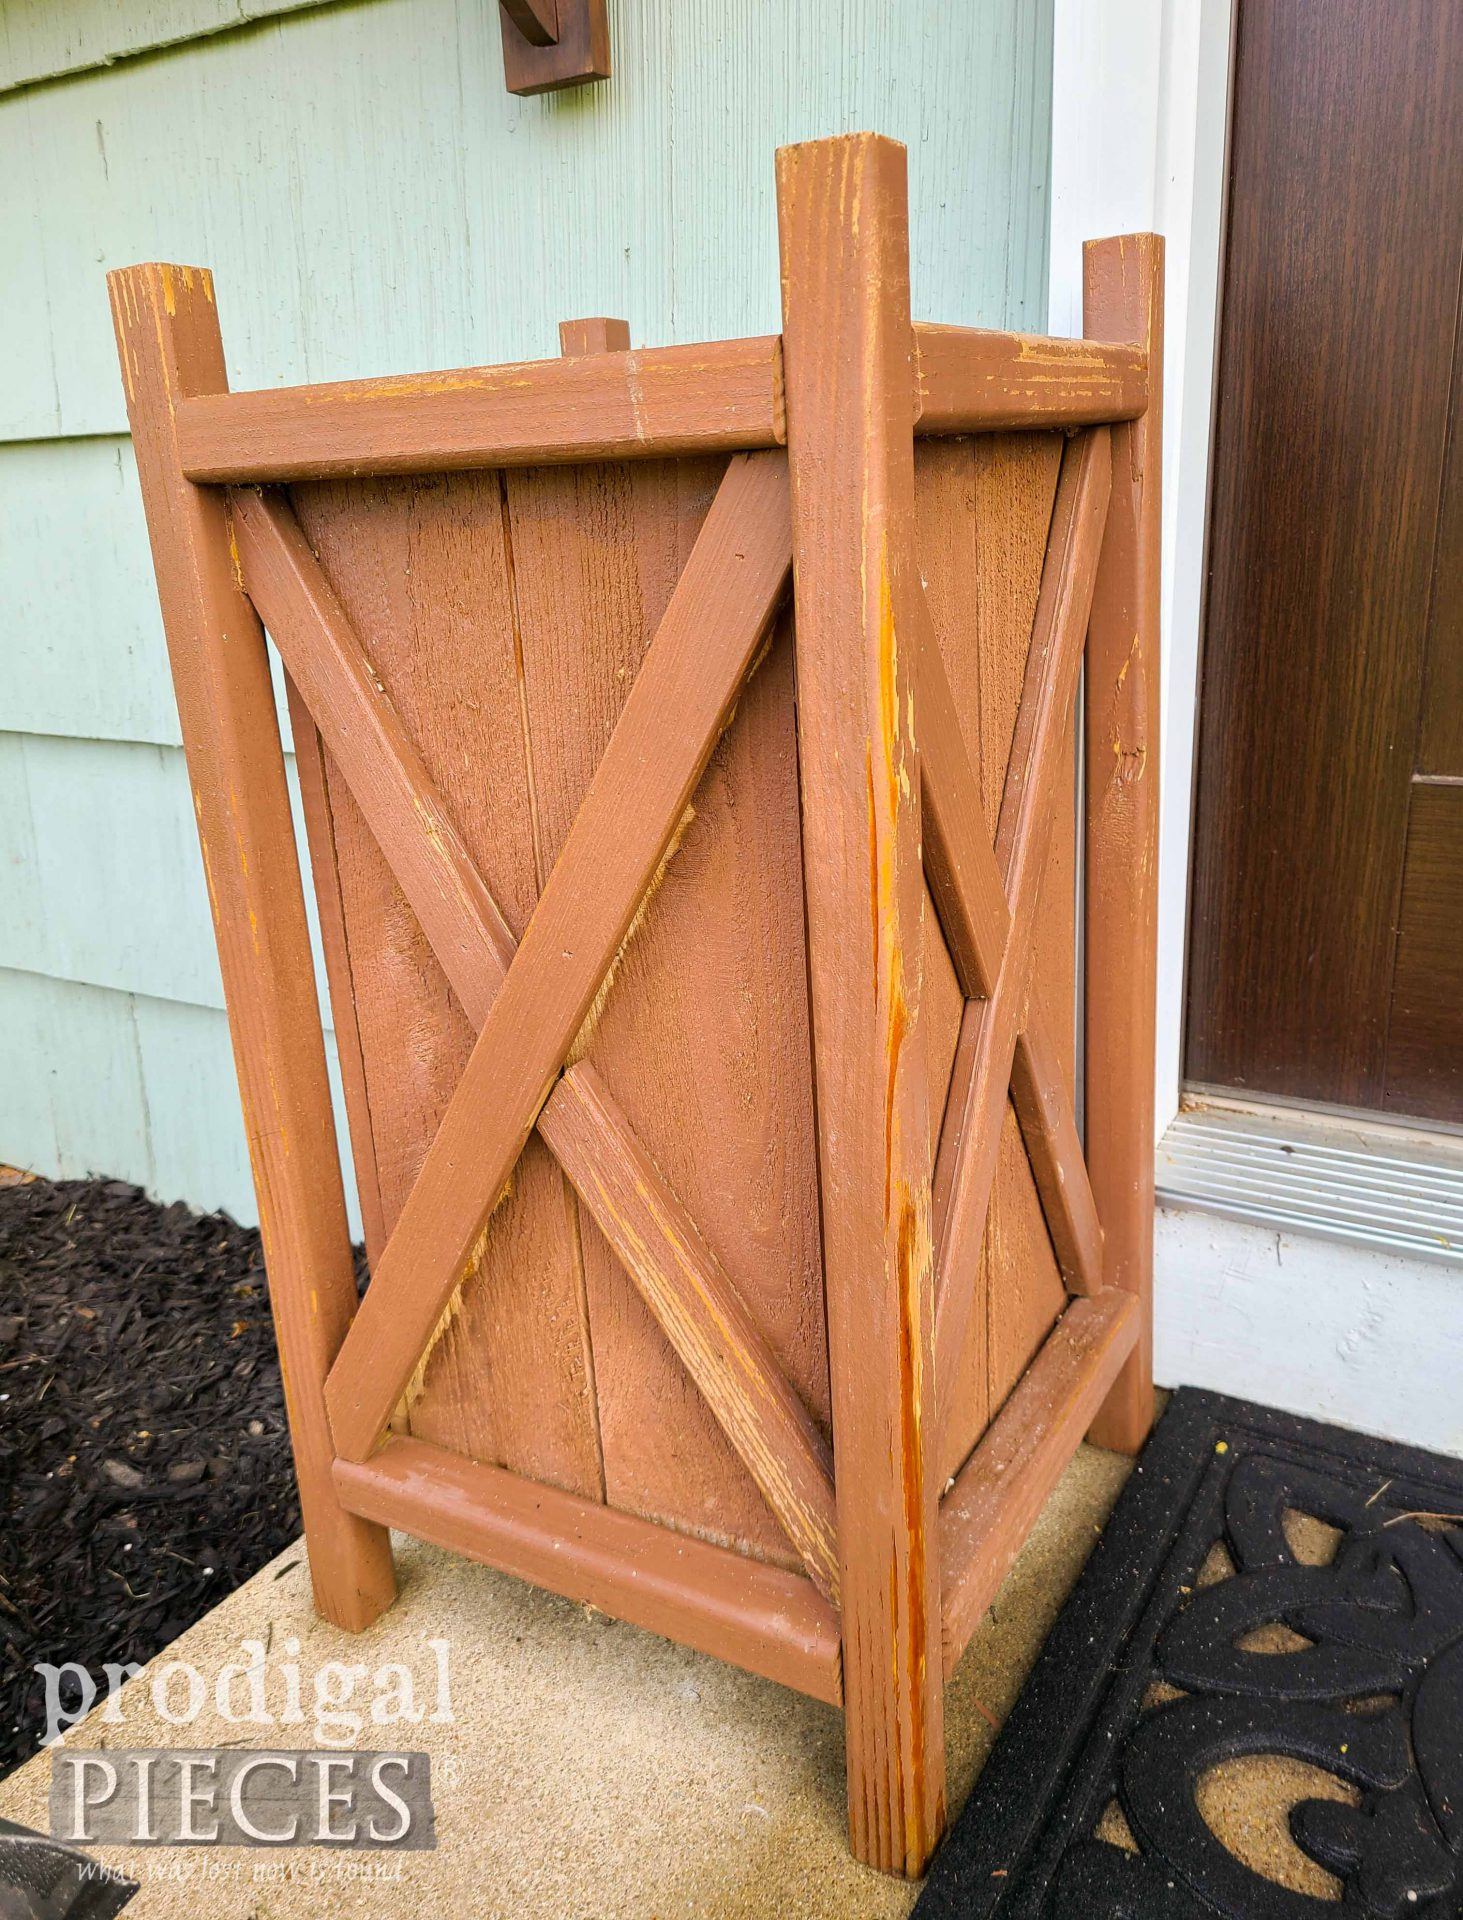 Old Planter Before Update by Prodigal Pieces | prodigalpieces.com #prodigalpieces